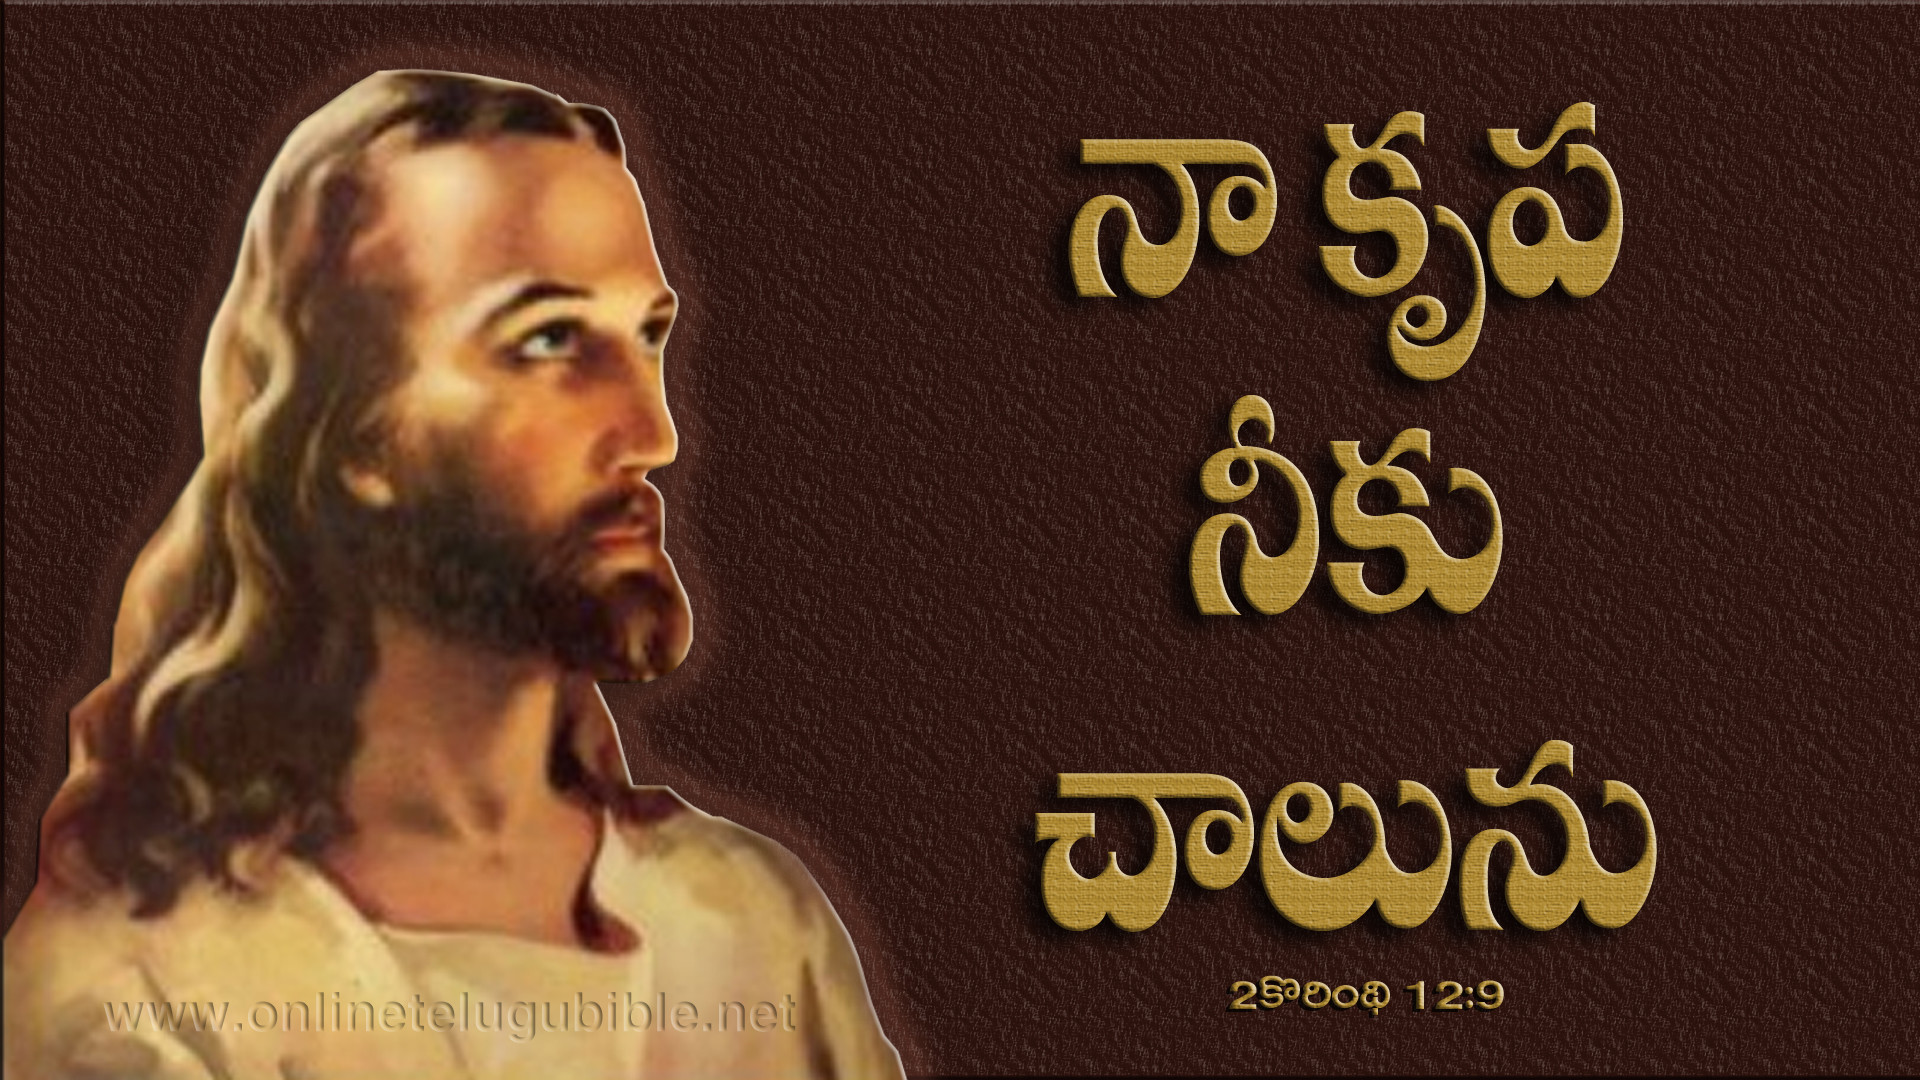 Jesus Images With Quotes Free Download Posted By Zoey Mercado